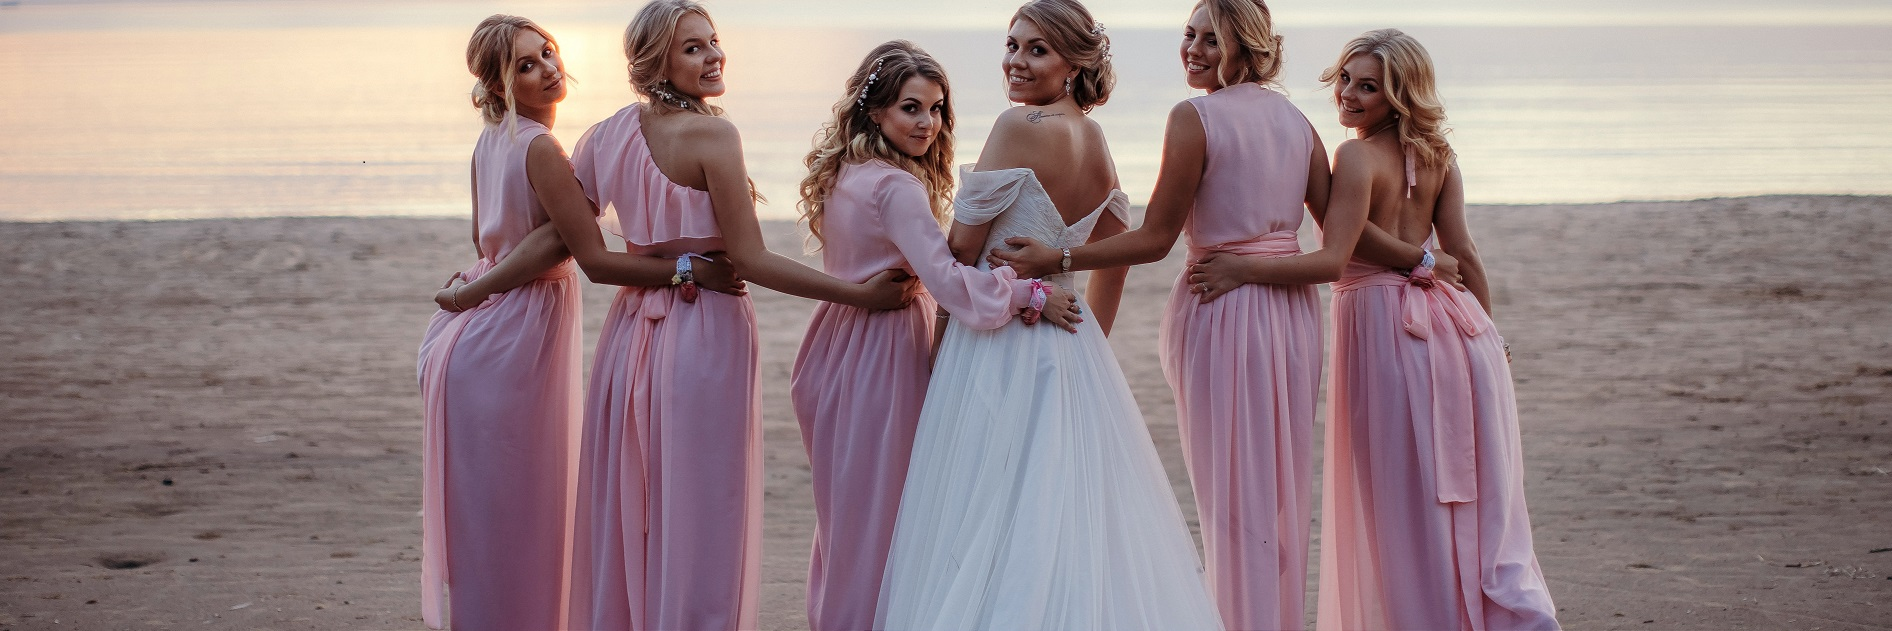 Bride Anna with her bridal party at the beach at sunset.